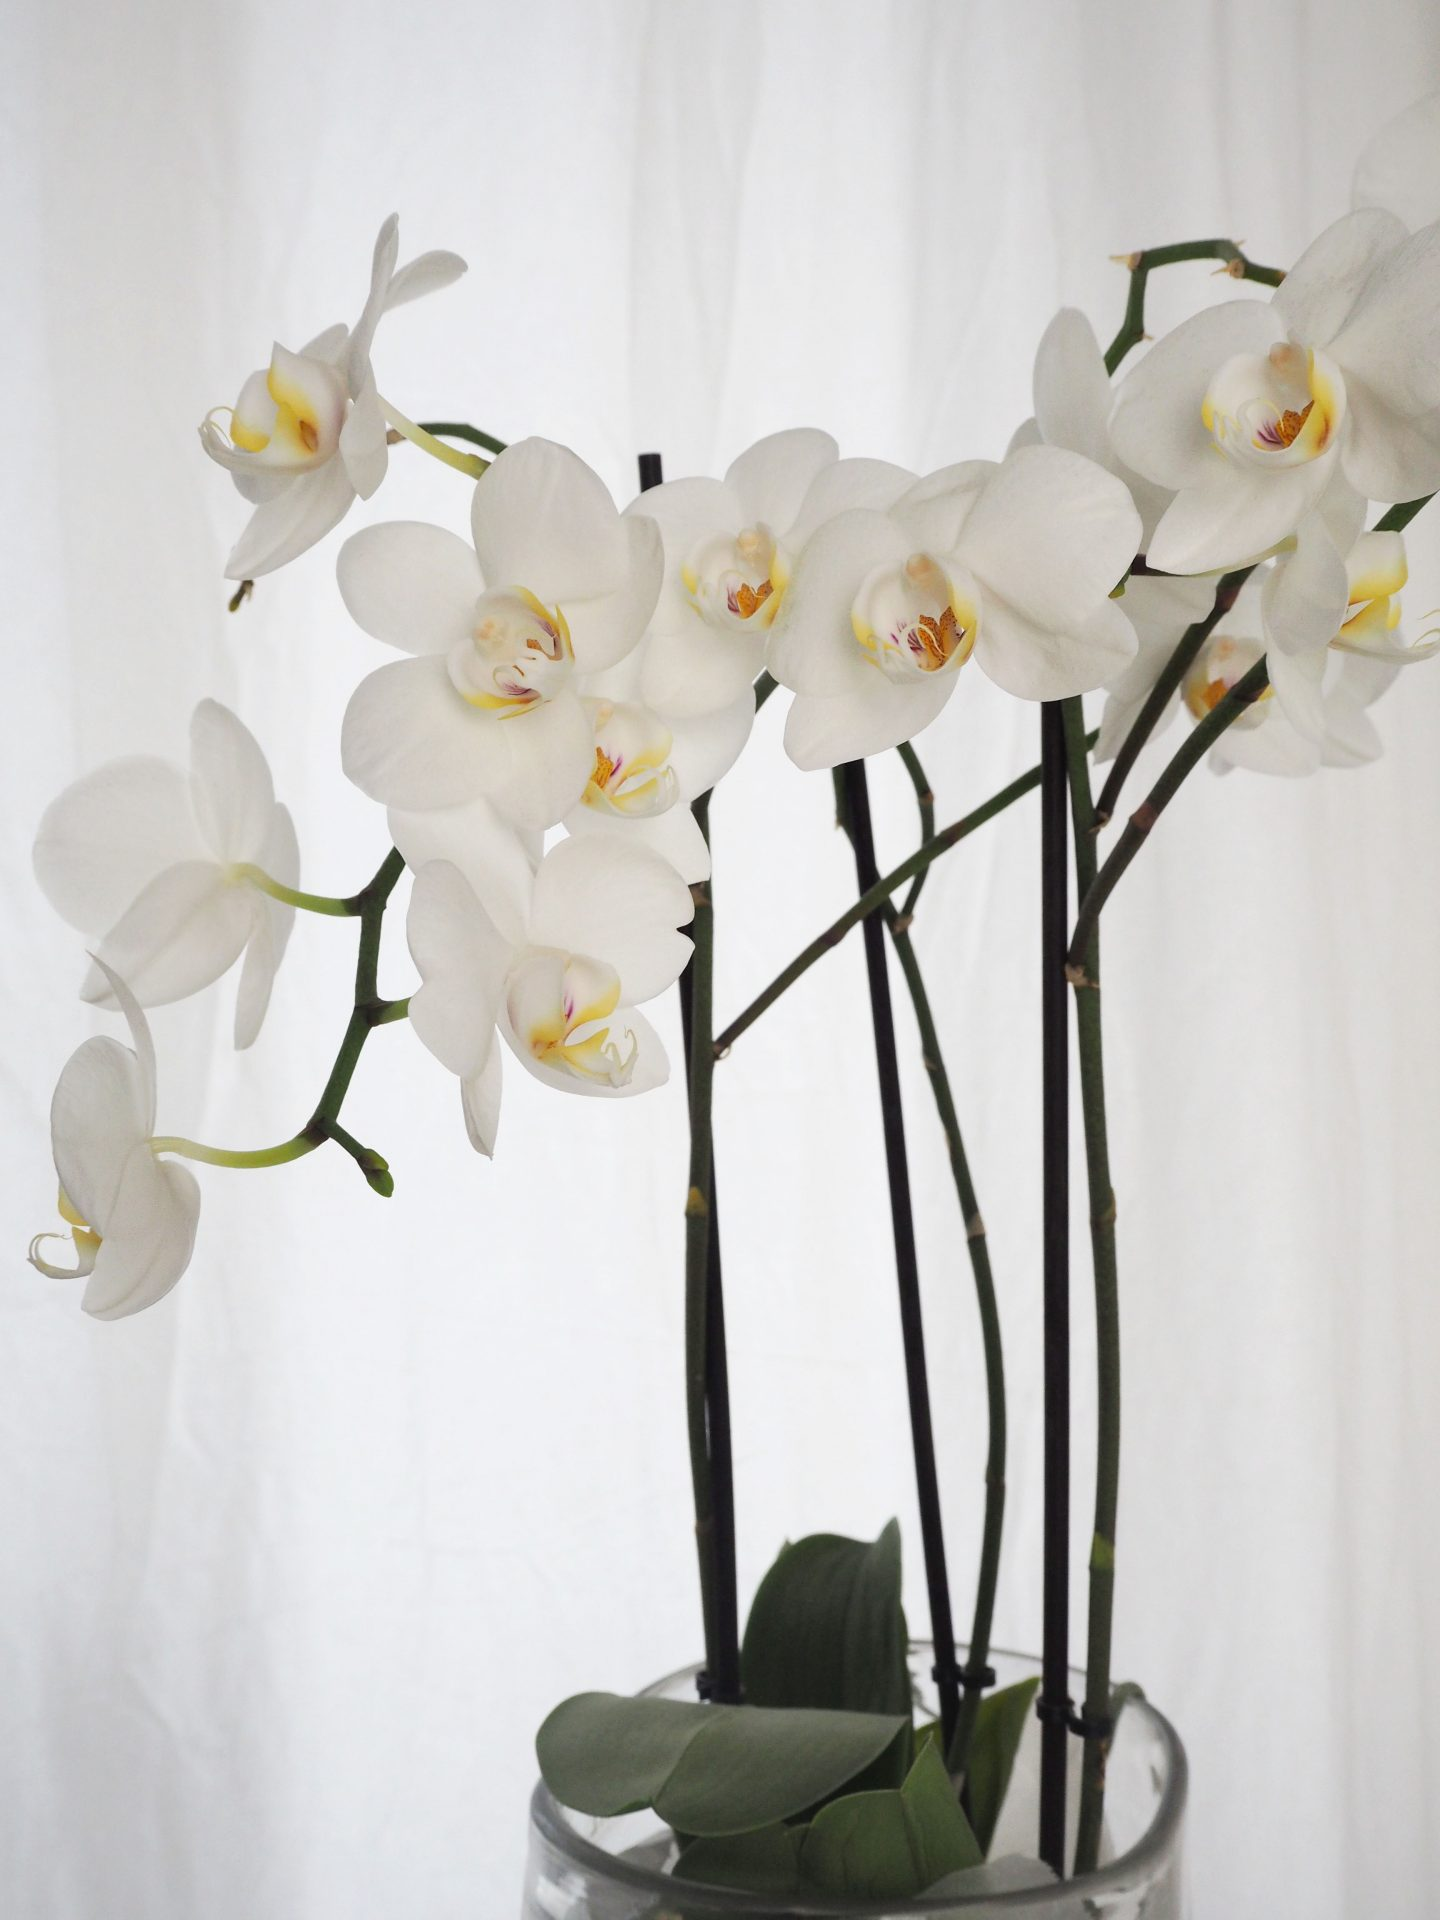 Keep good care of orchids